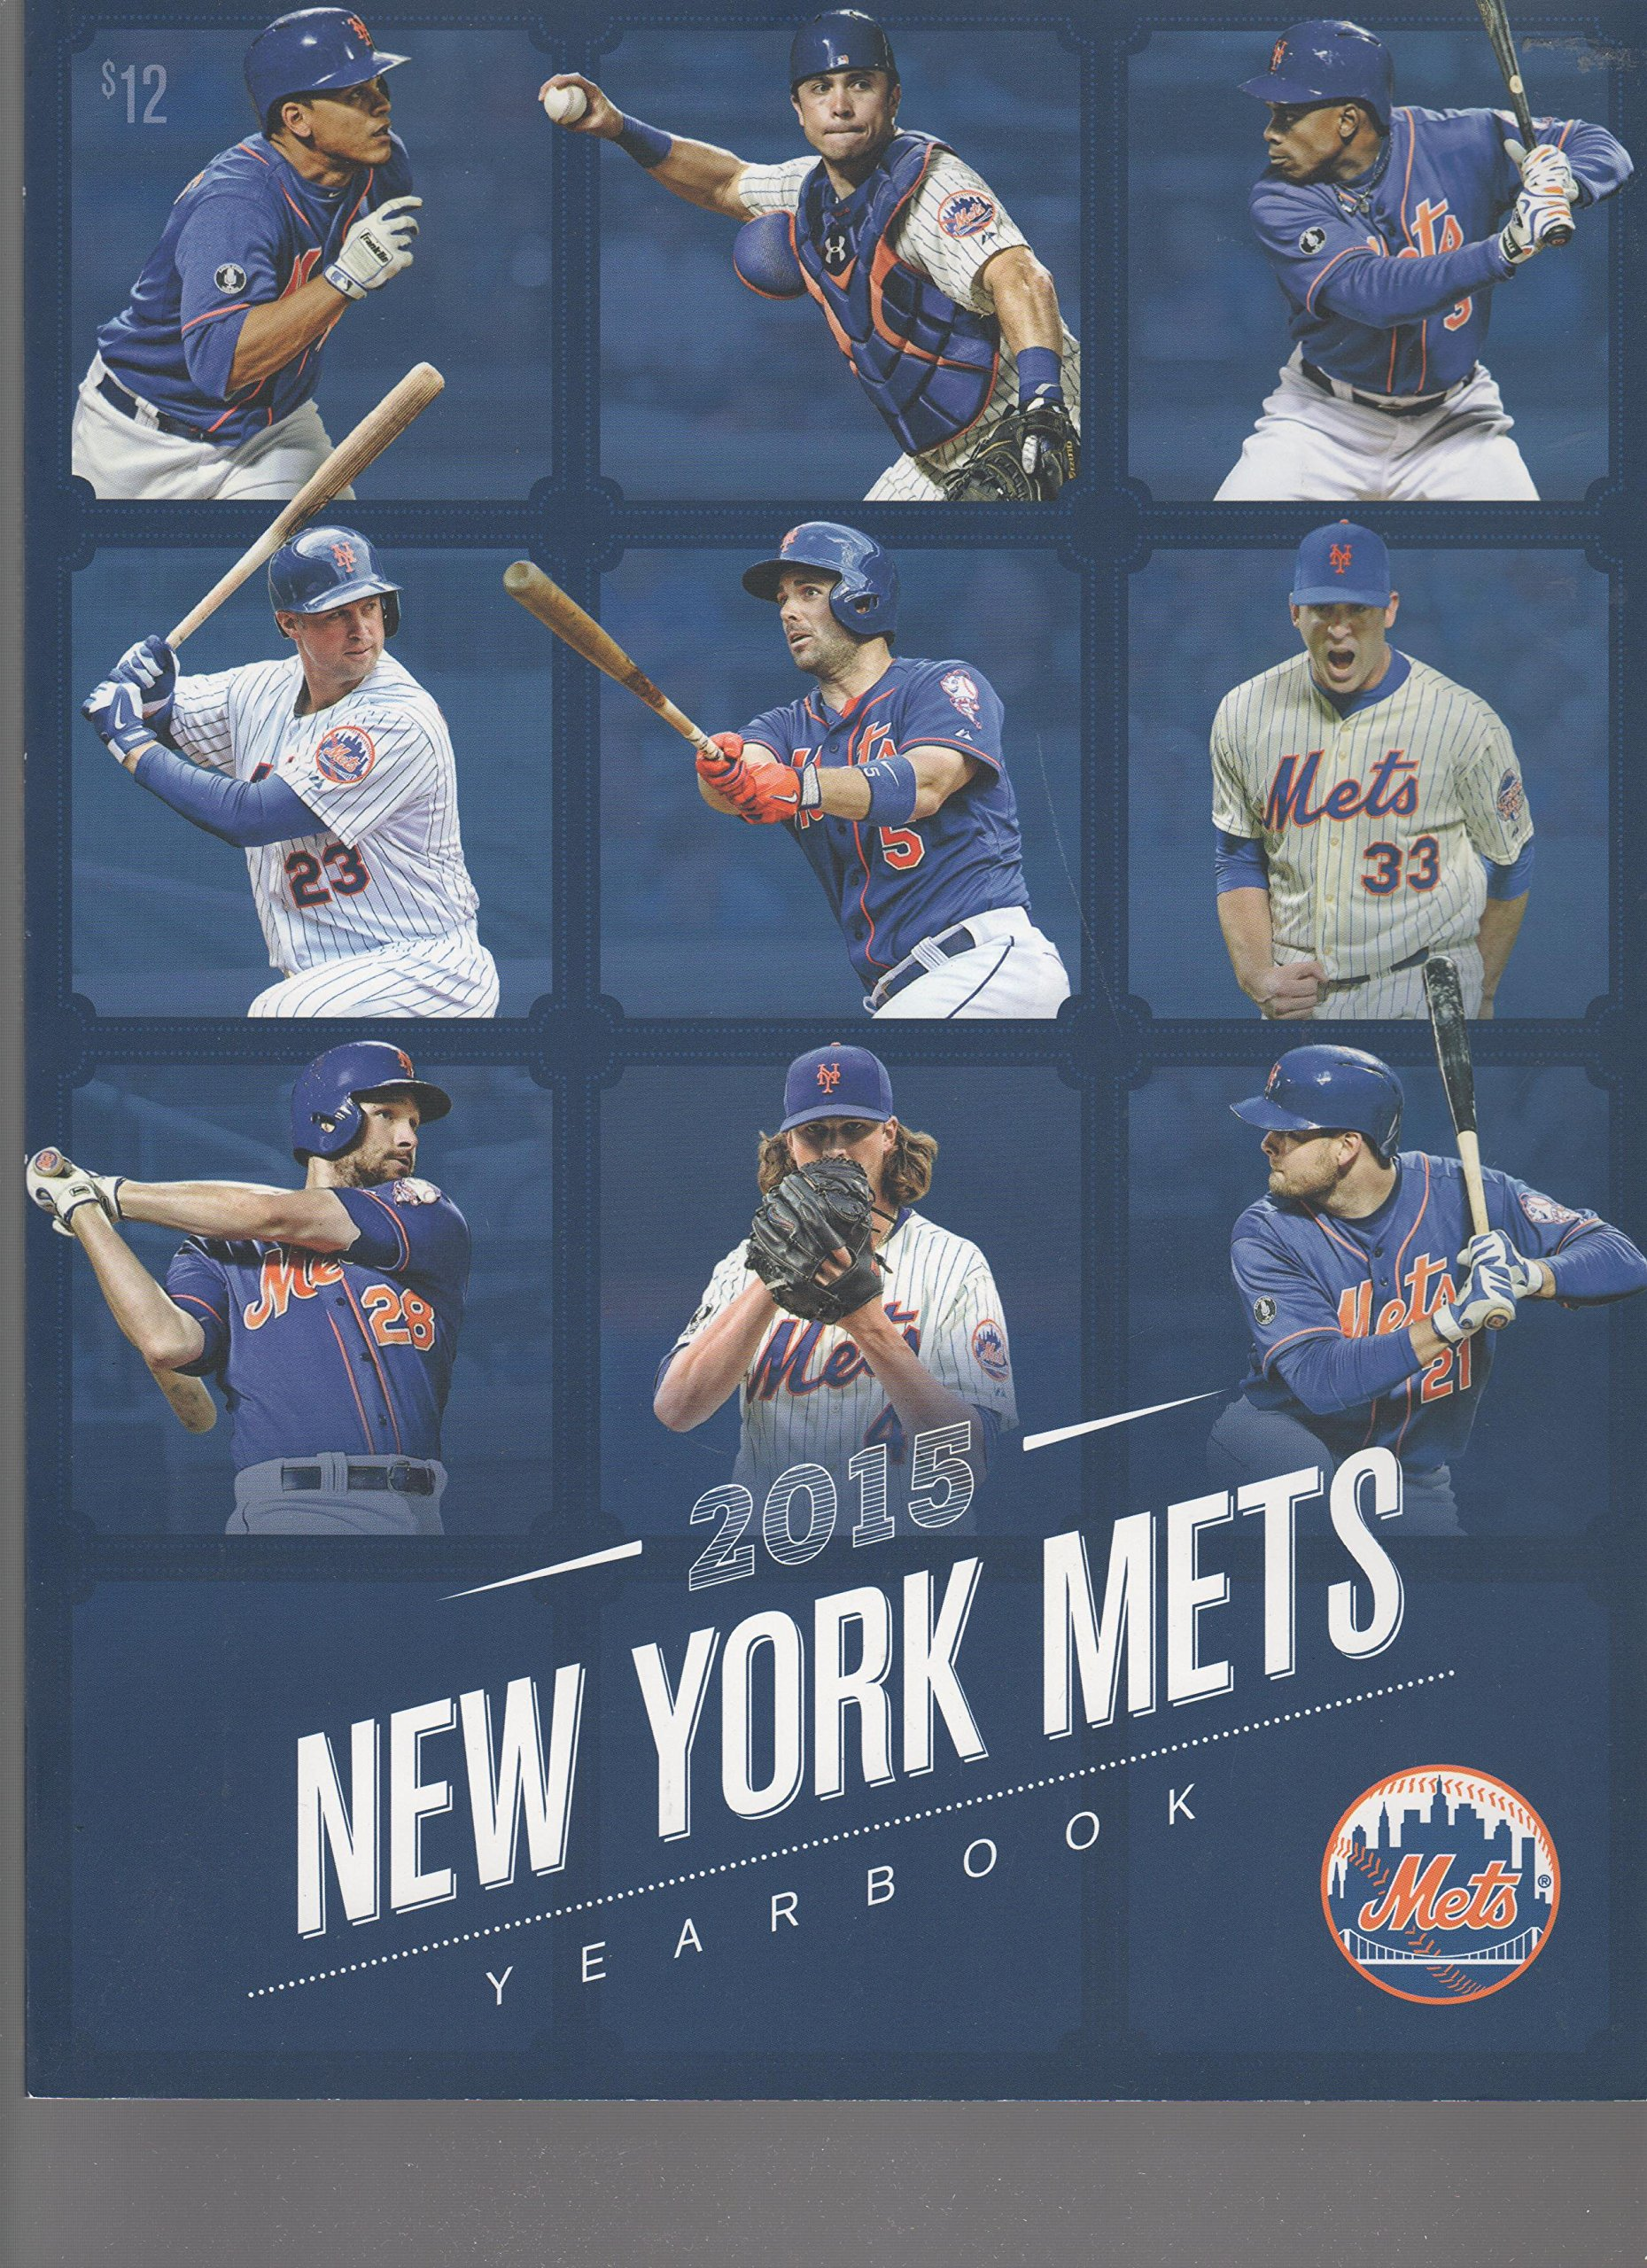 2015 New York Mets Yearbook: Editor-in-Chief Danielle